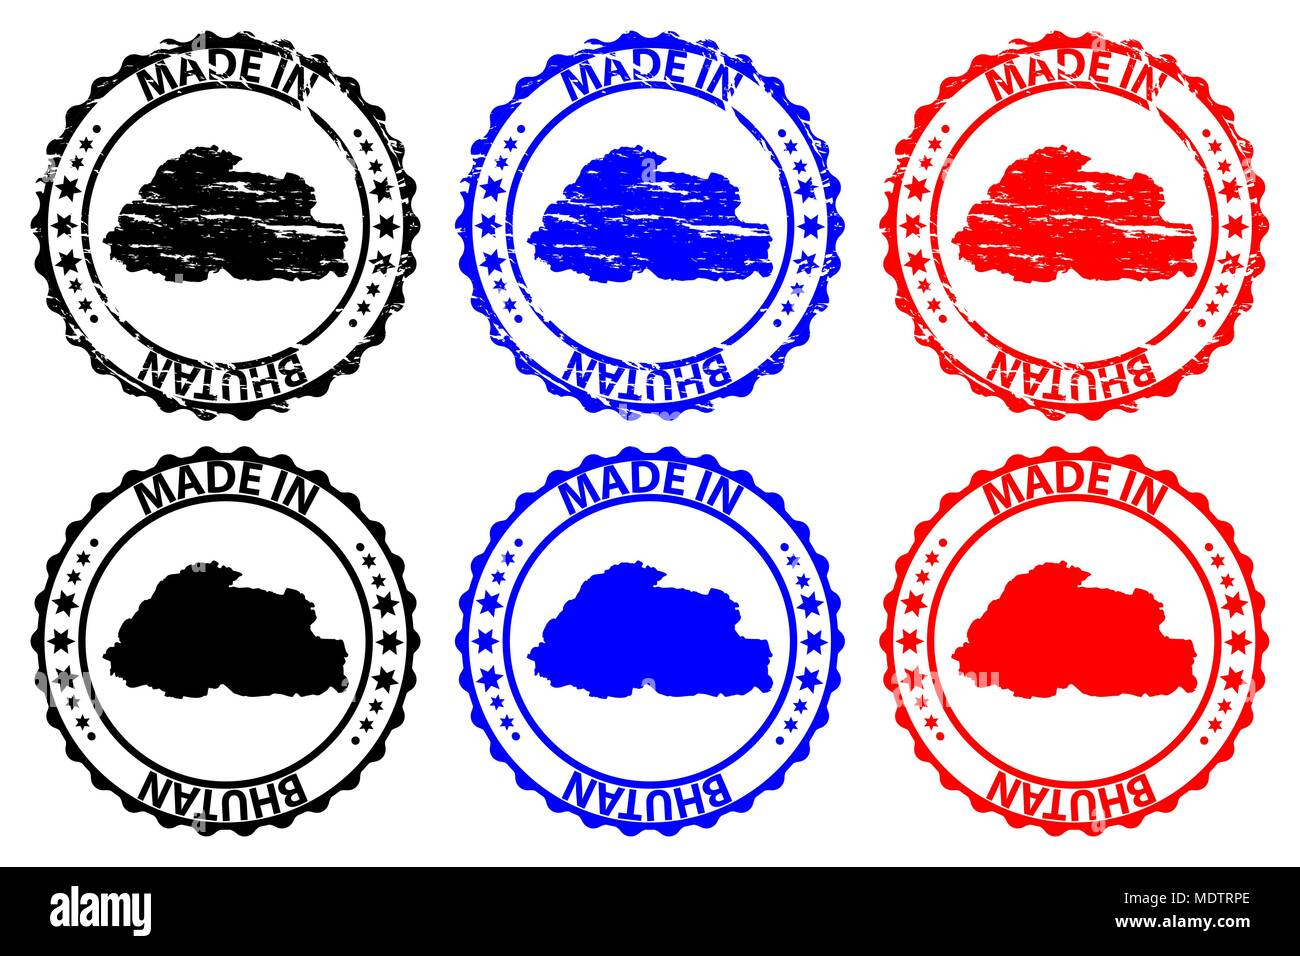 Made in Bhutan - rubber stamp - vector, Bhutan map pattern - black, blue and red - Stock Vector